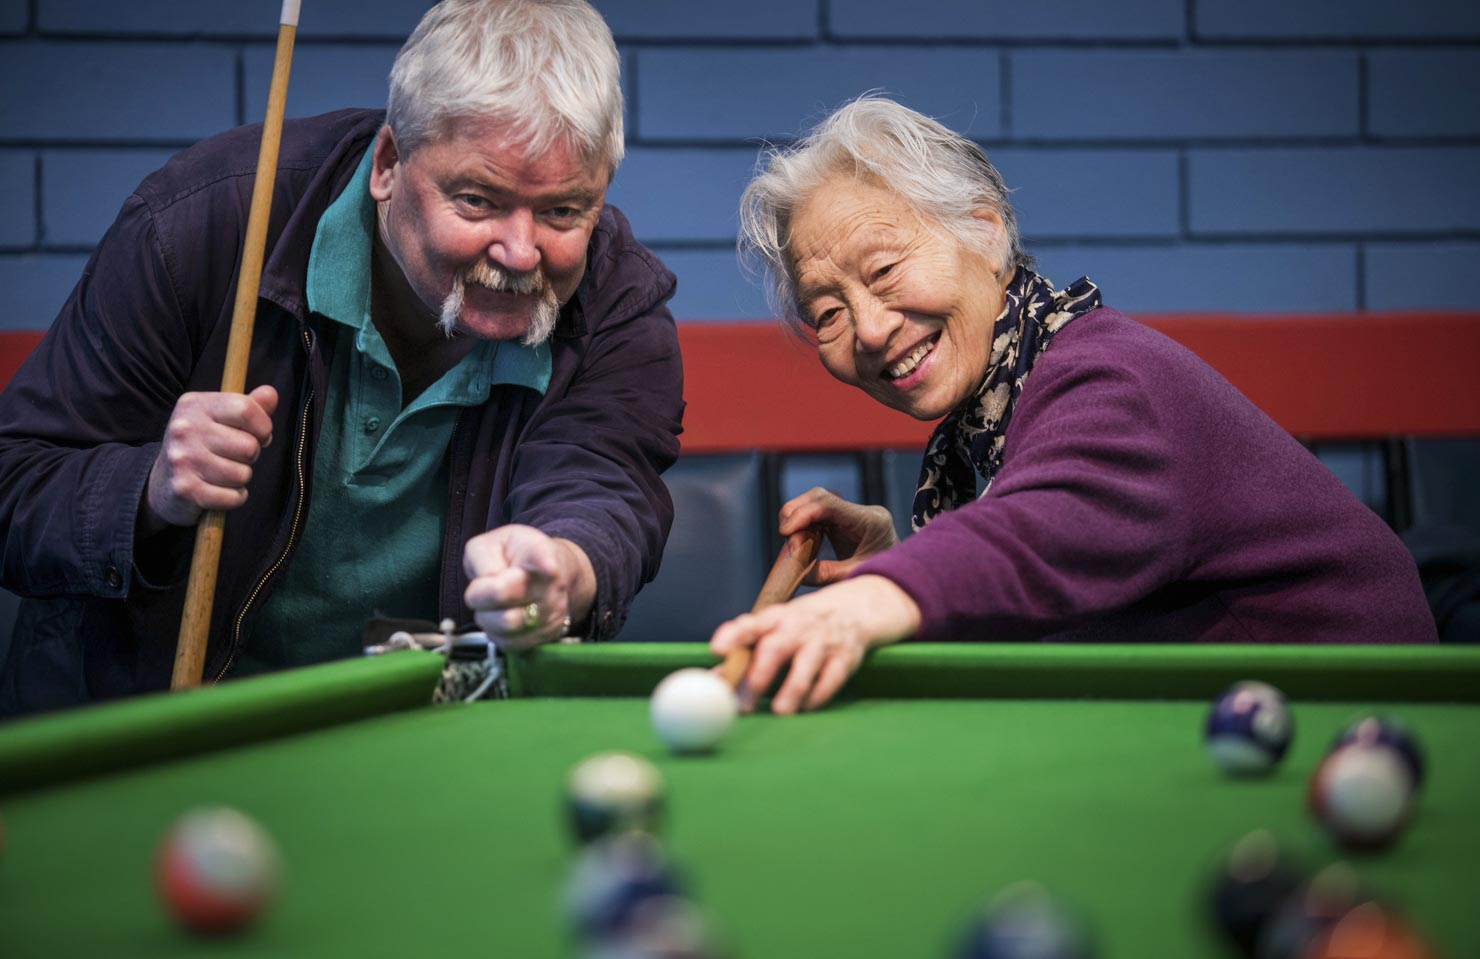 An Anglo-Australian man and Vietnamese-Australian woman play billiards together